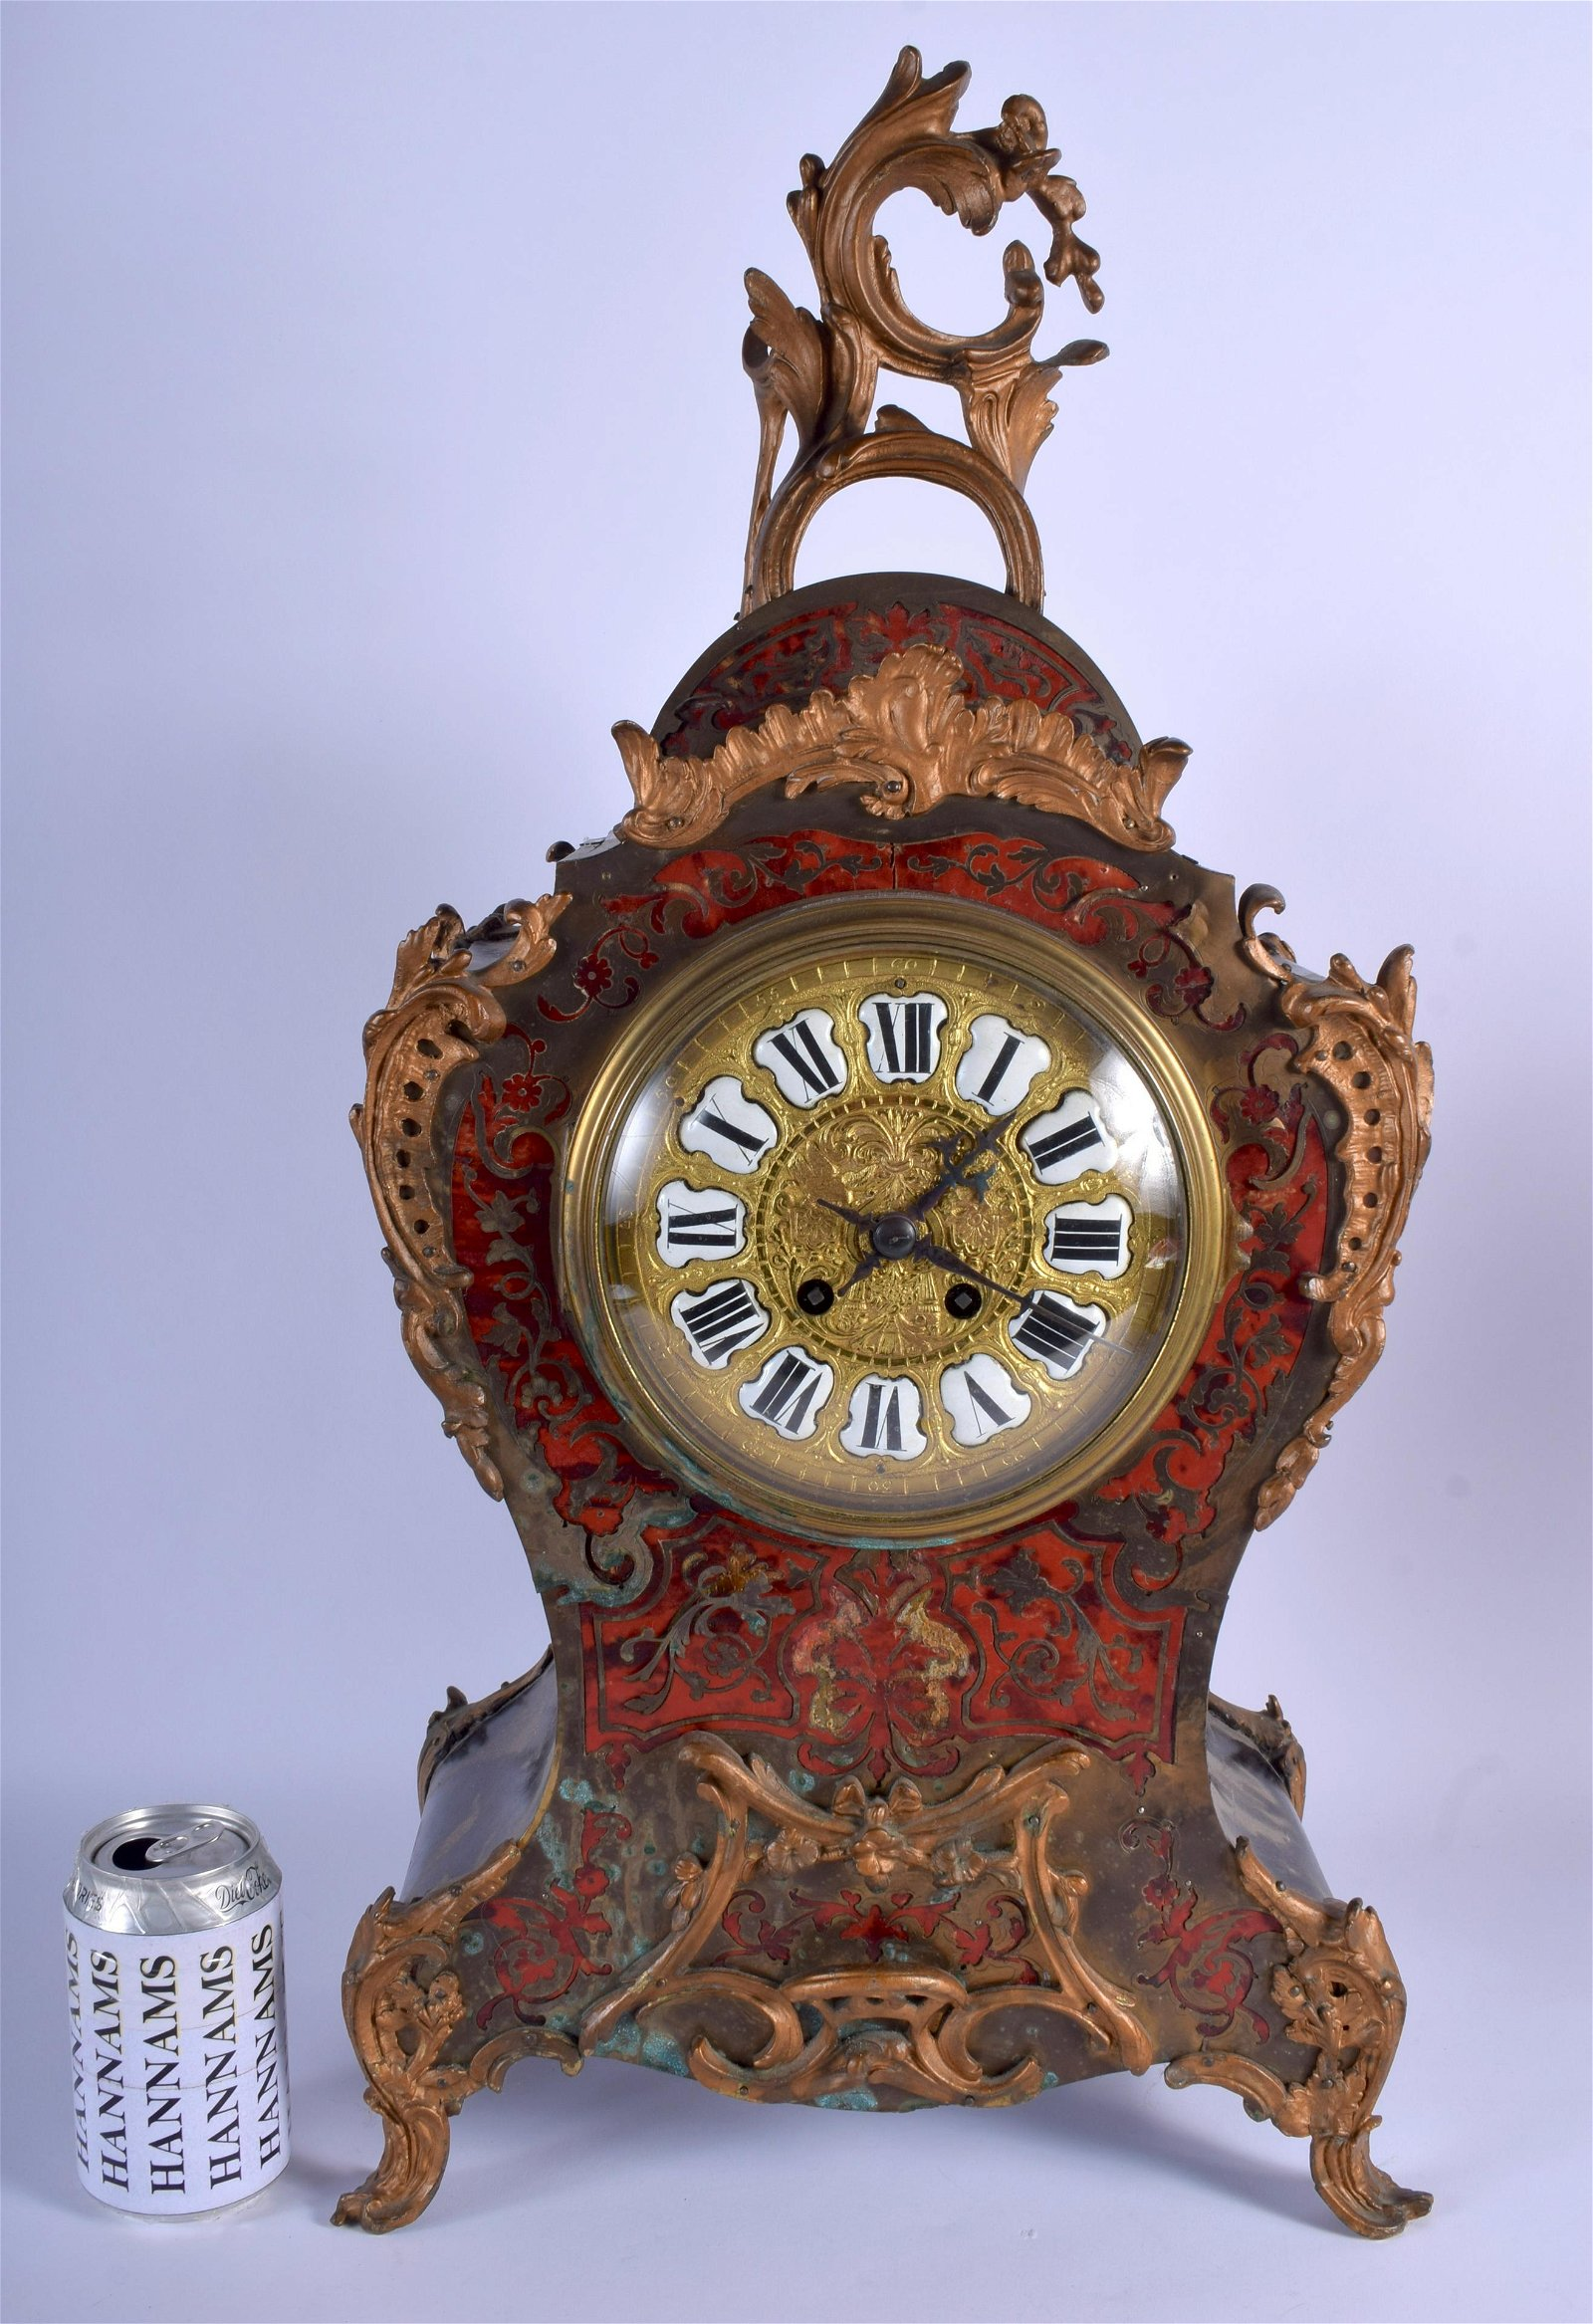 A LARGE ANTIQUE FRENCH BOULLE Shell MANTEL CLOCK